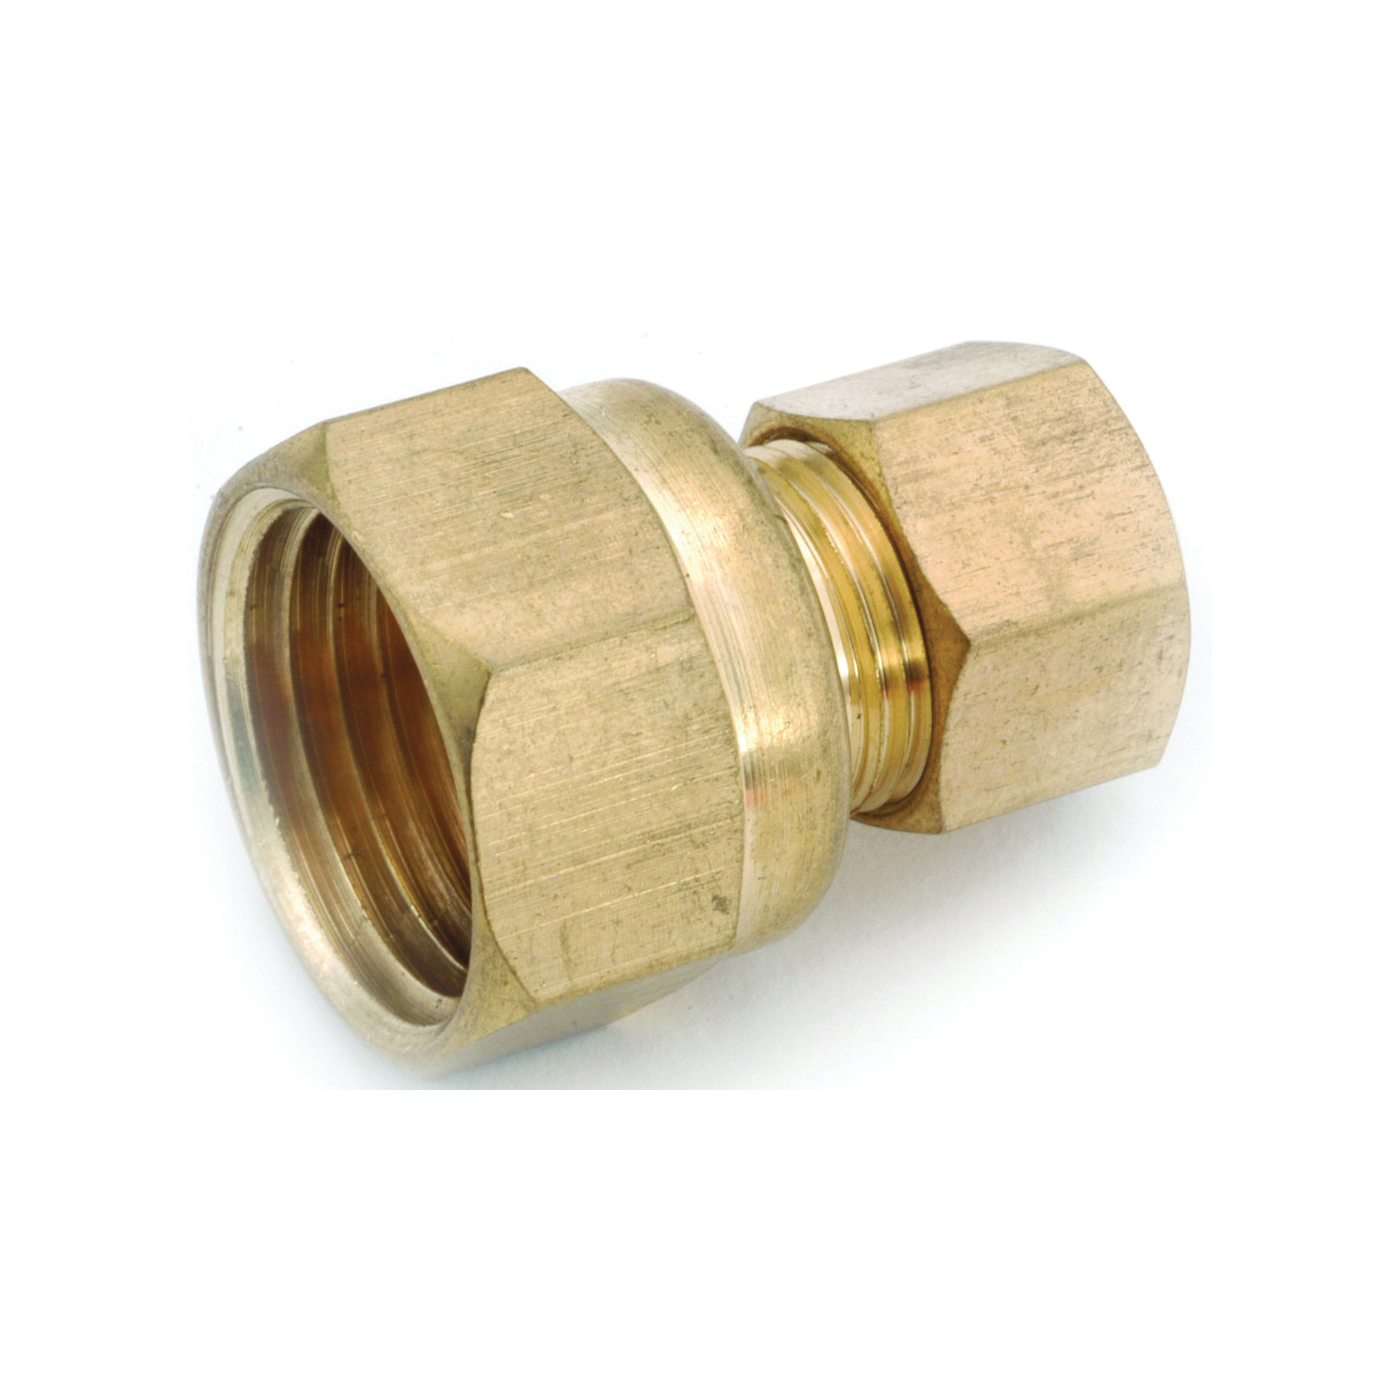 Picture of Anderson Metals 750097-0806 Tube Adapter, 1/2 x 3/8 in, Compression, Brass